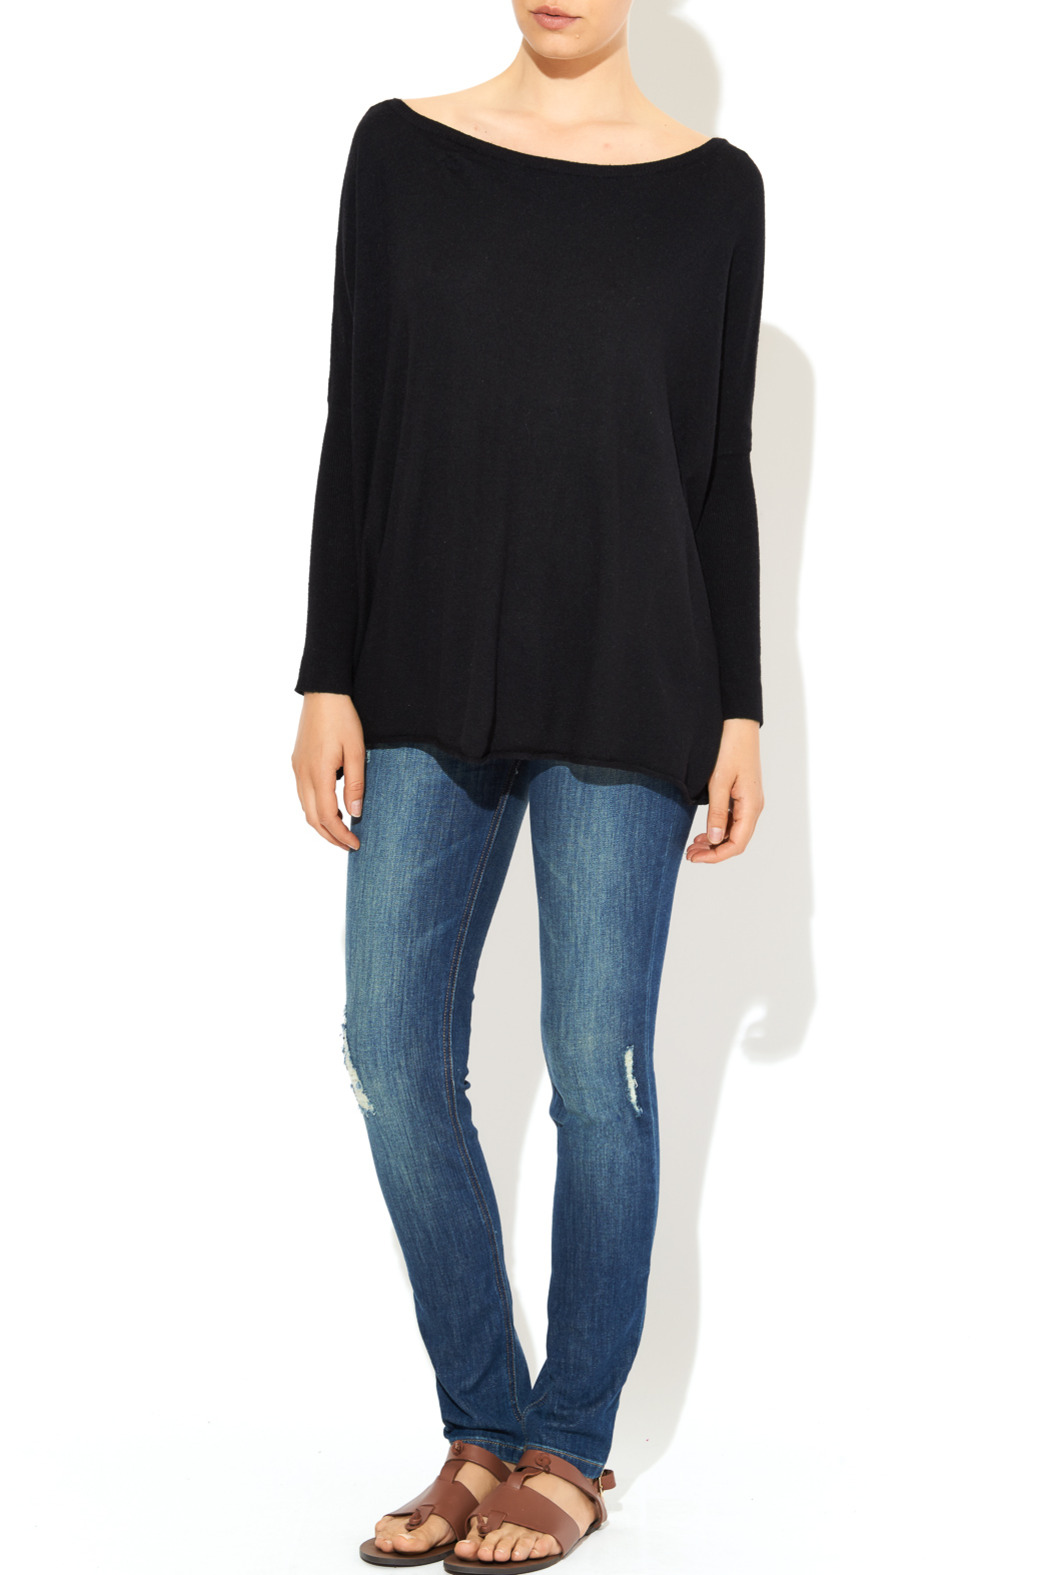 InStyle Black Dolman Sweater - Front Full Image